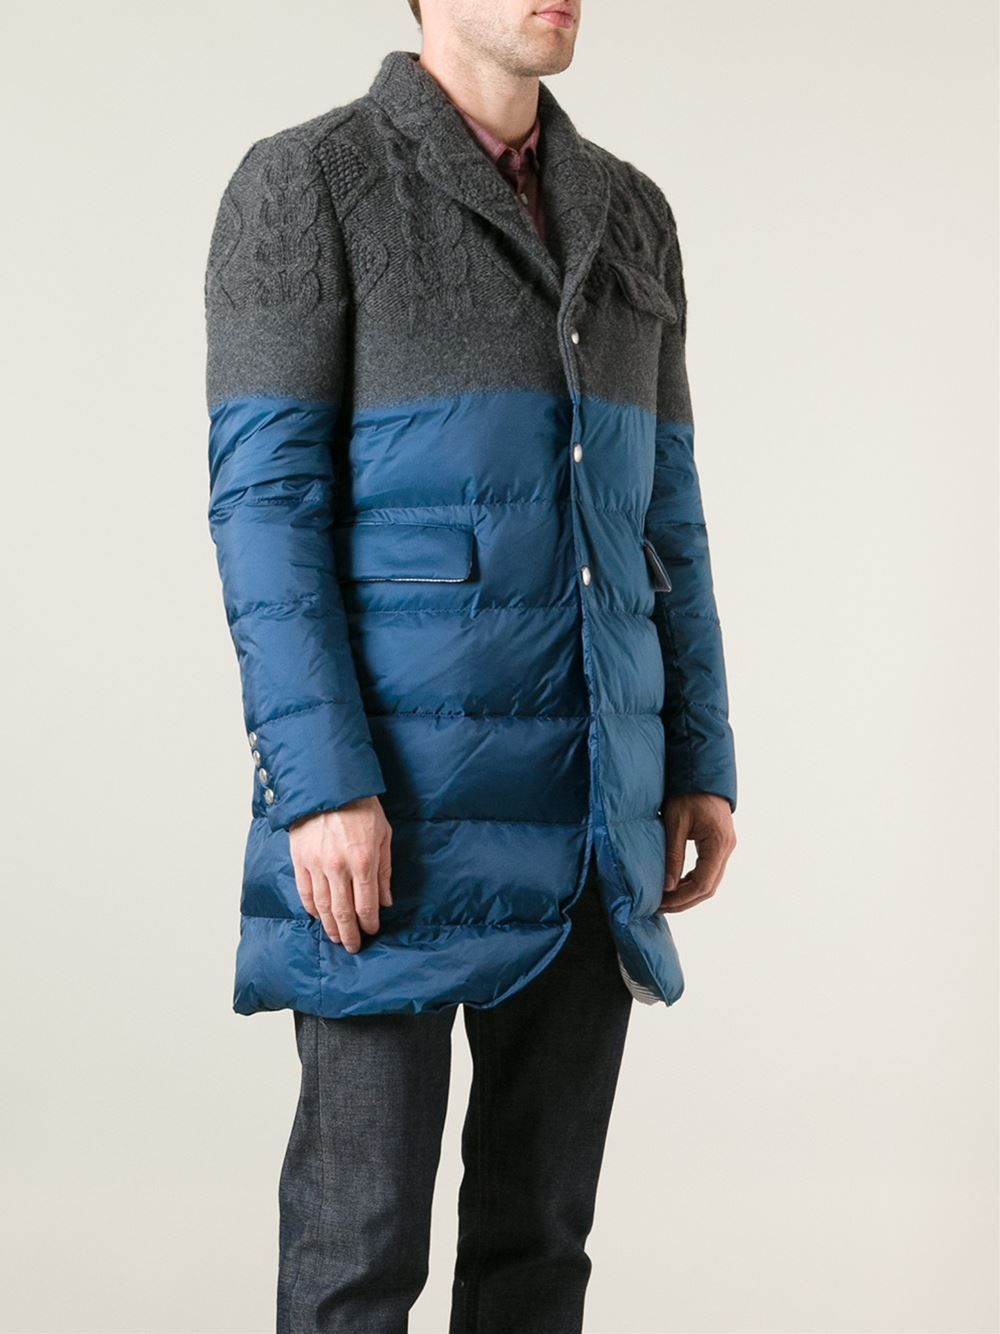 c710c6265 Moncler Gamme Bleu Padded Jacket - - Farfetch.com | *Elements of ...